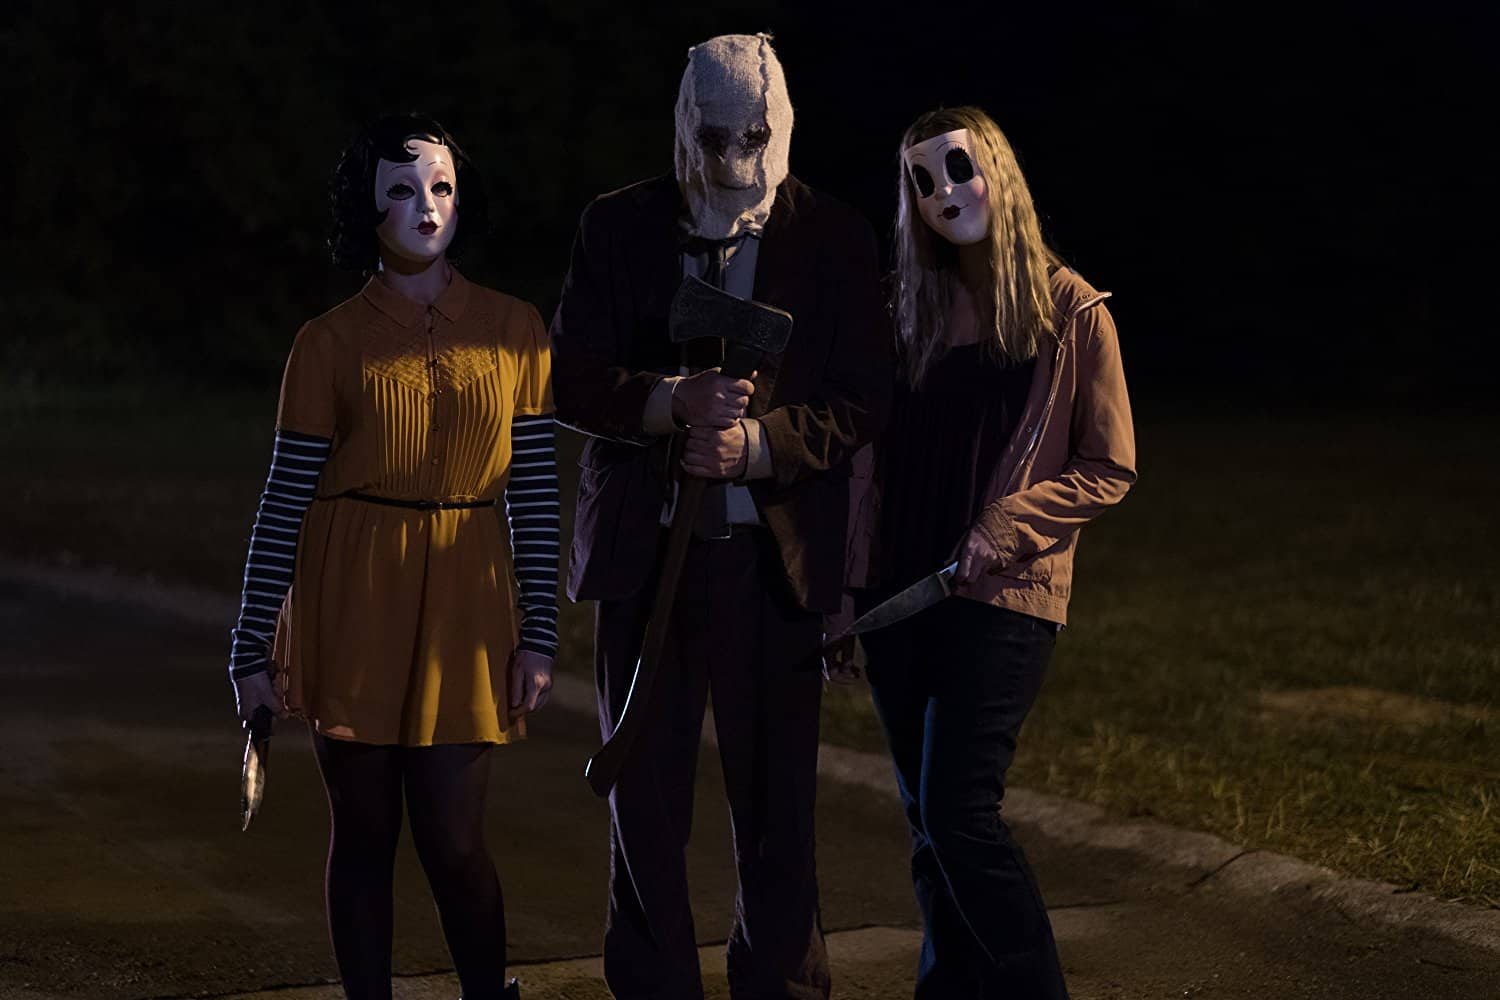 Horror Movie News: The Strangers: Prey at Night Opens March 9